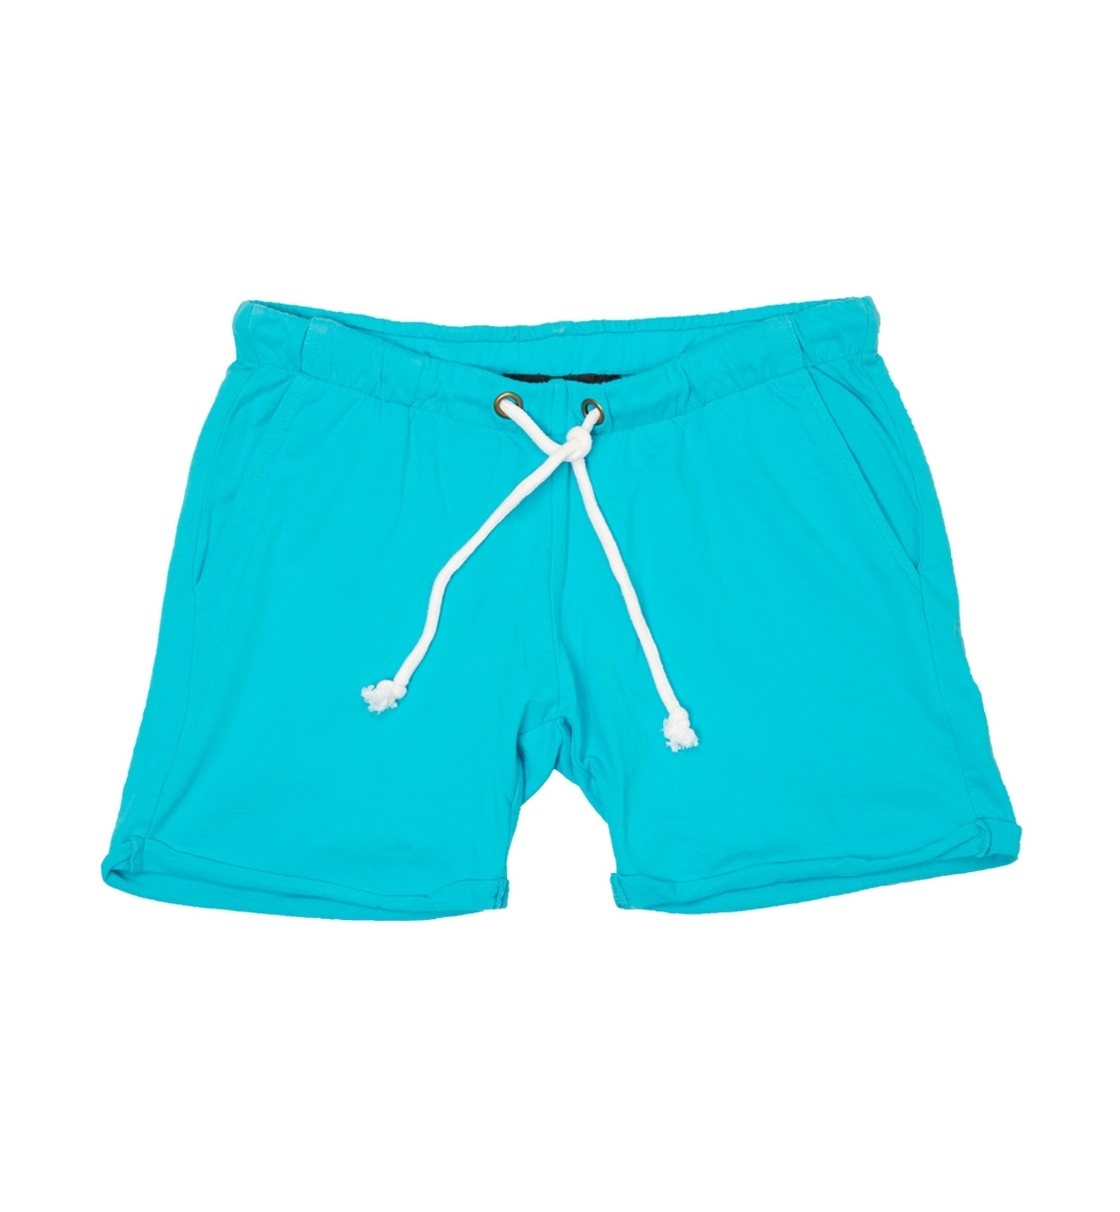 Body Action Γυναικείο Αθλητικό Σορτς Relaxed Fit Shorts